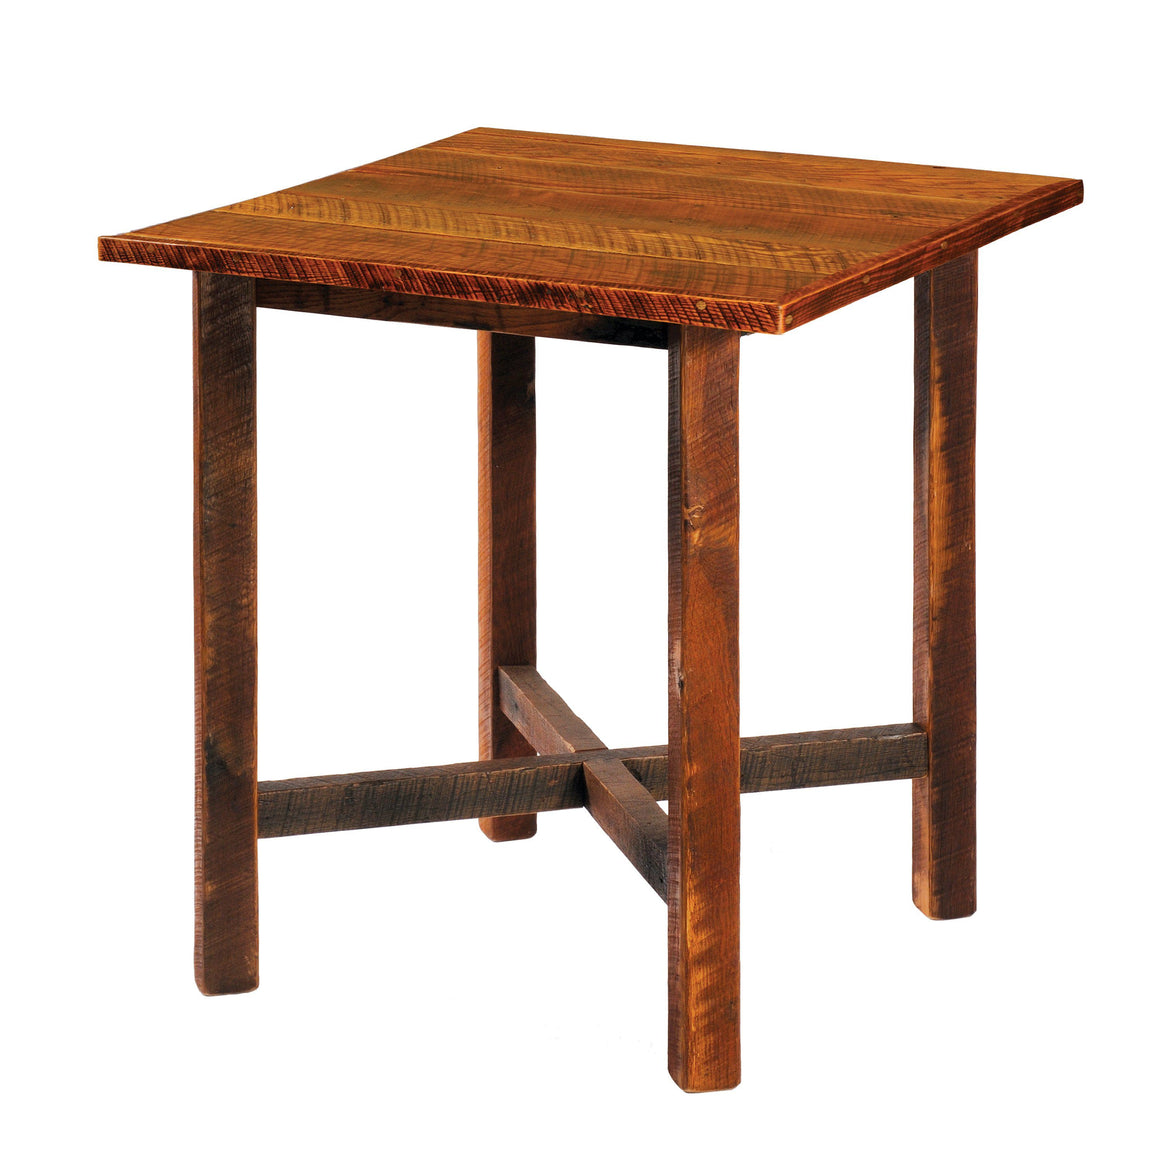 "Barnwood Pub Table - 40"" Square - Artisan Top and Antique Oak Top - Rustic Deco Incorporated"